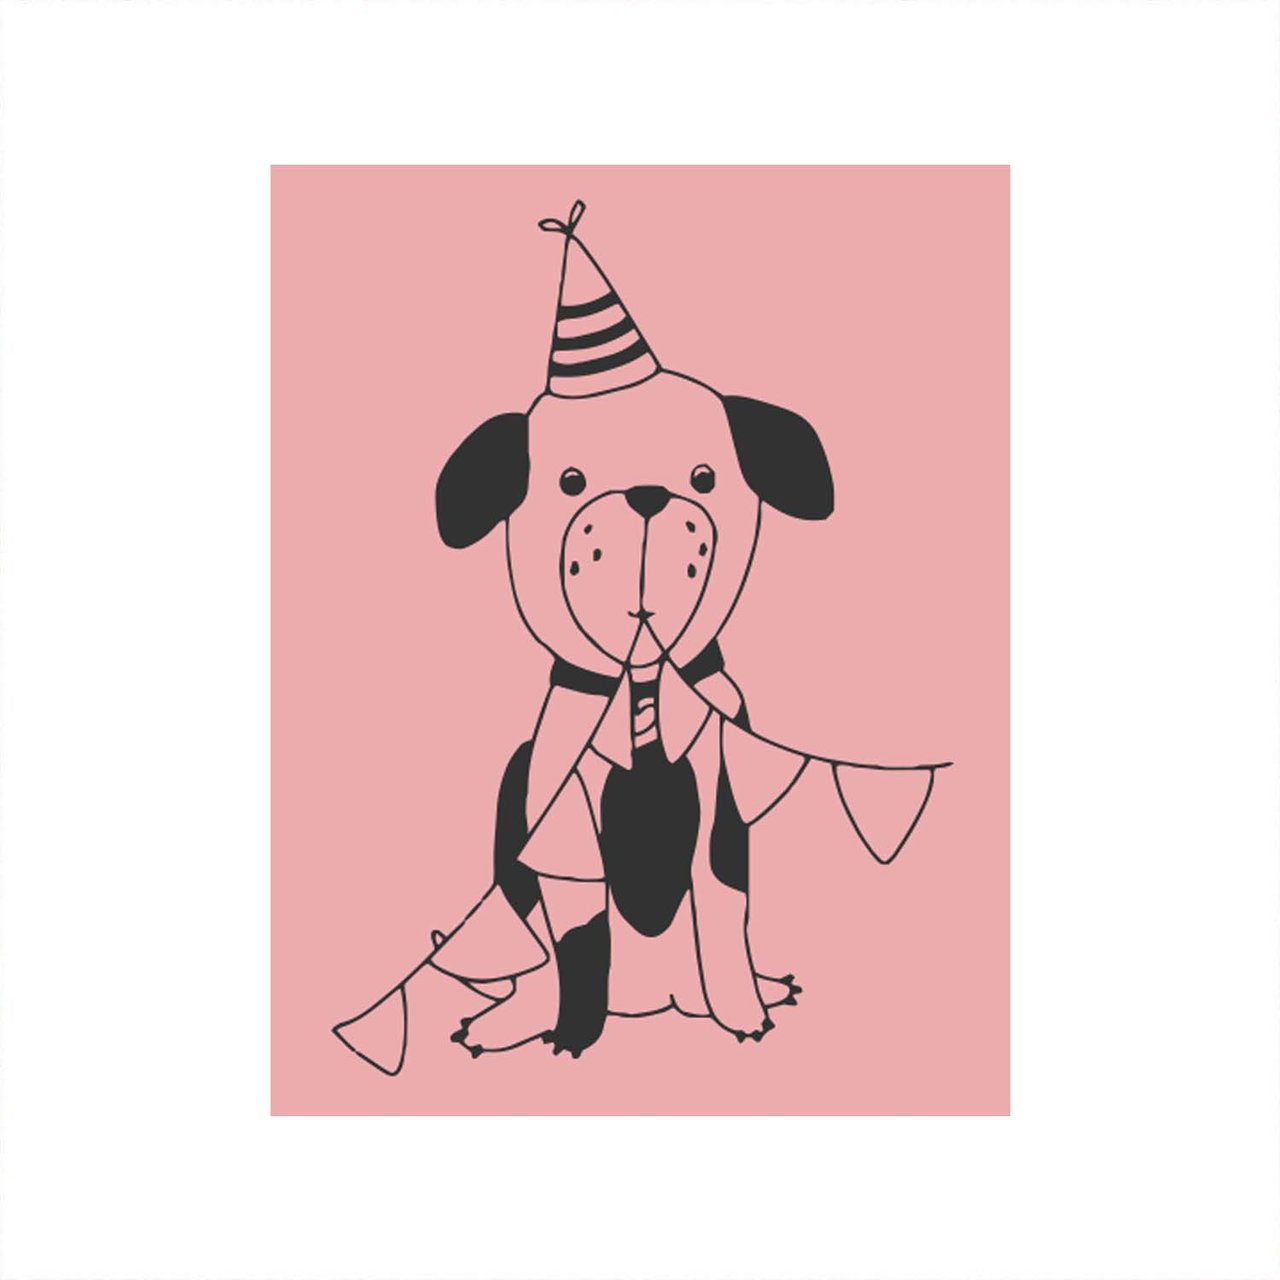 May&Berry Stempel Hund rosa 35x45mm von May&Berry